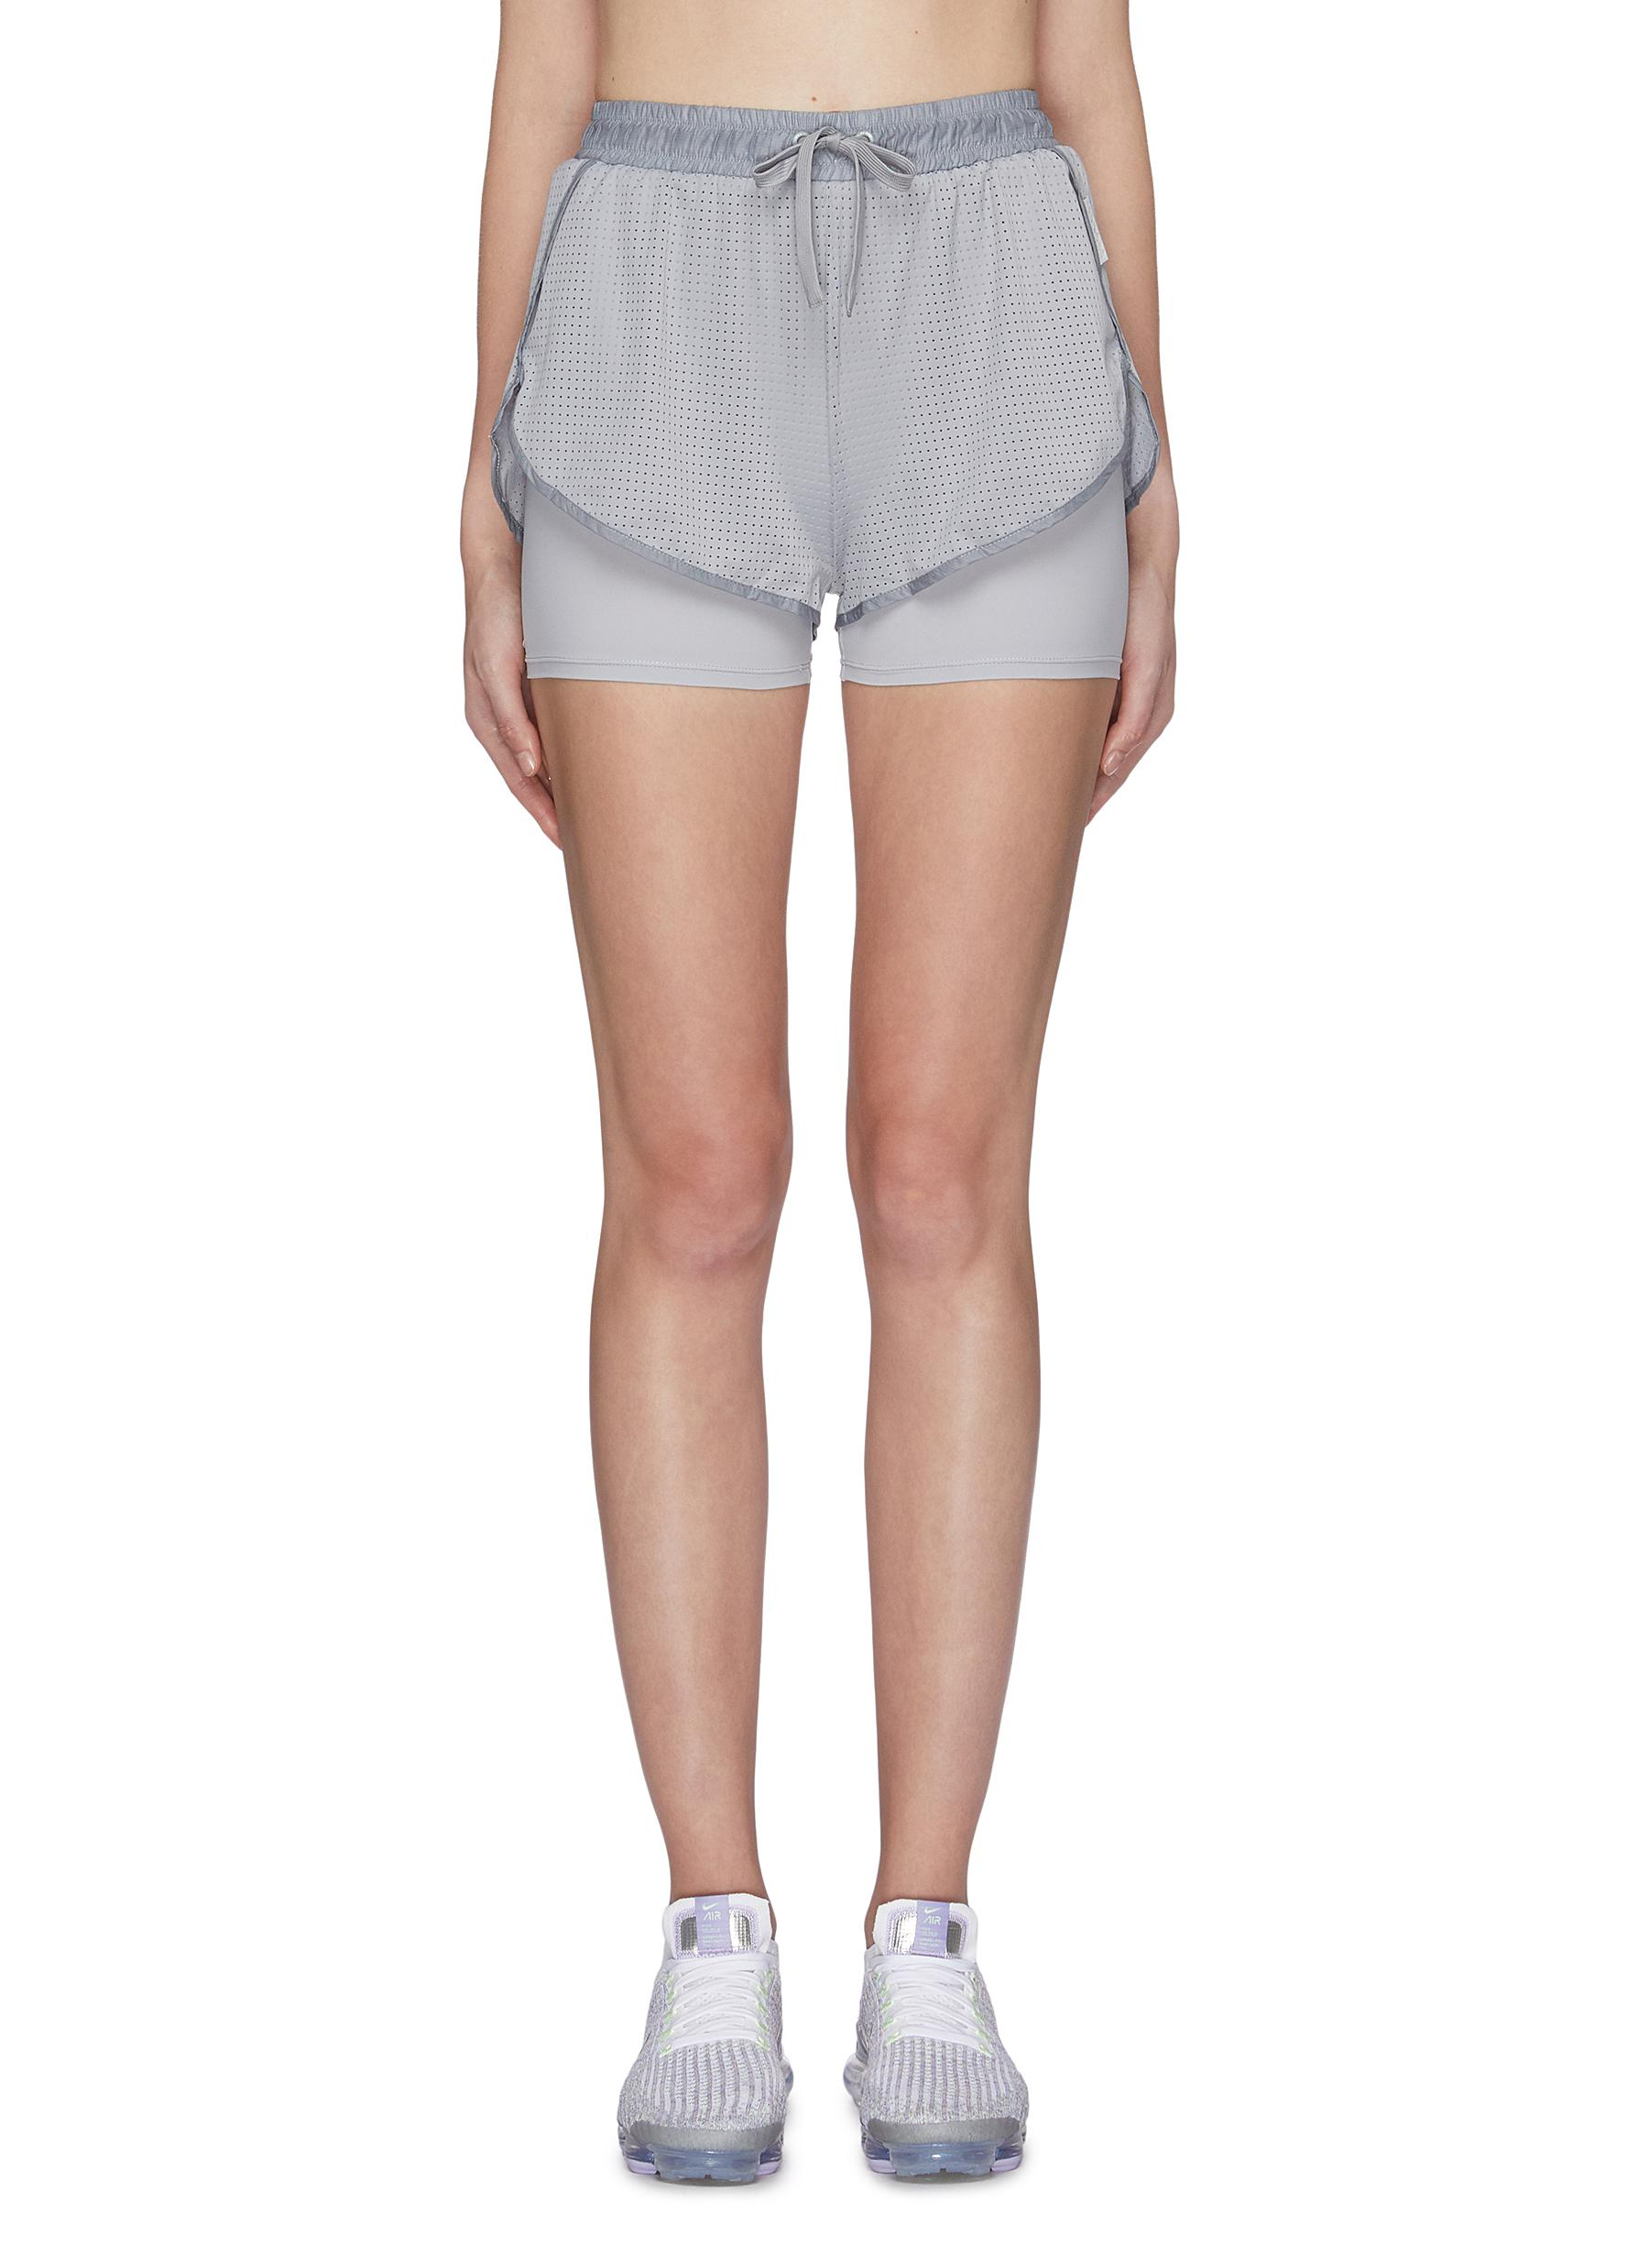 Logo waistband layered mesh Particle Noofuu running shorts by Particle Fever